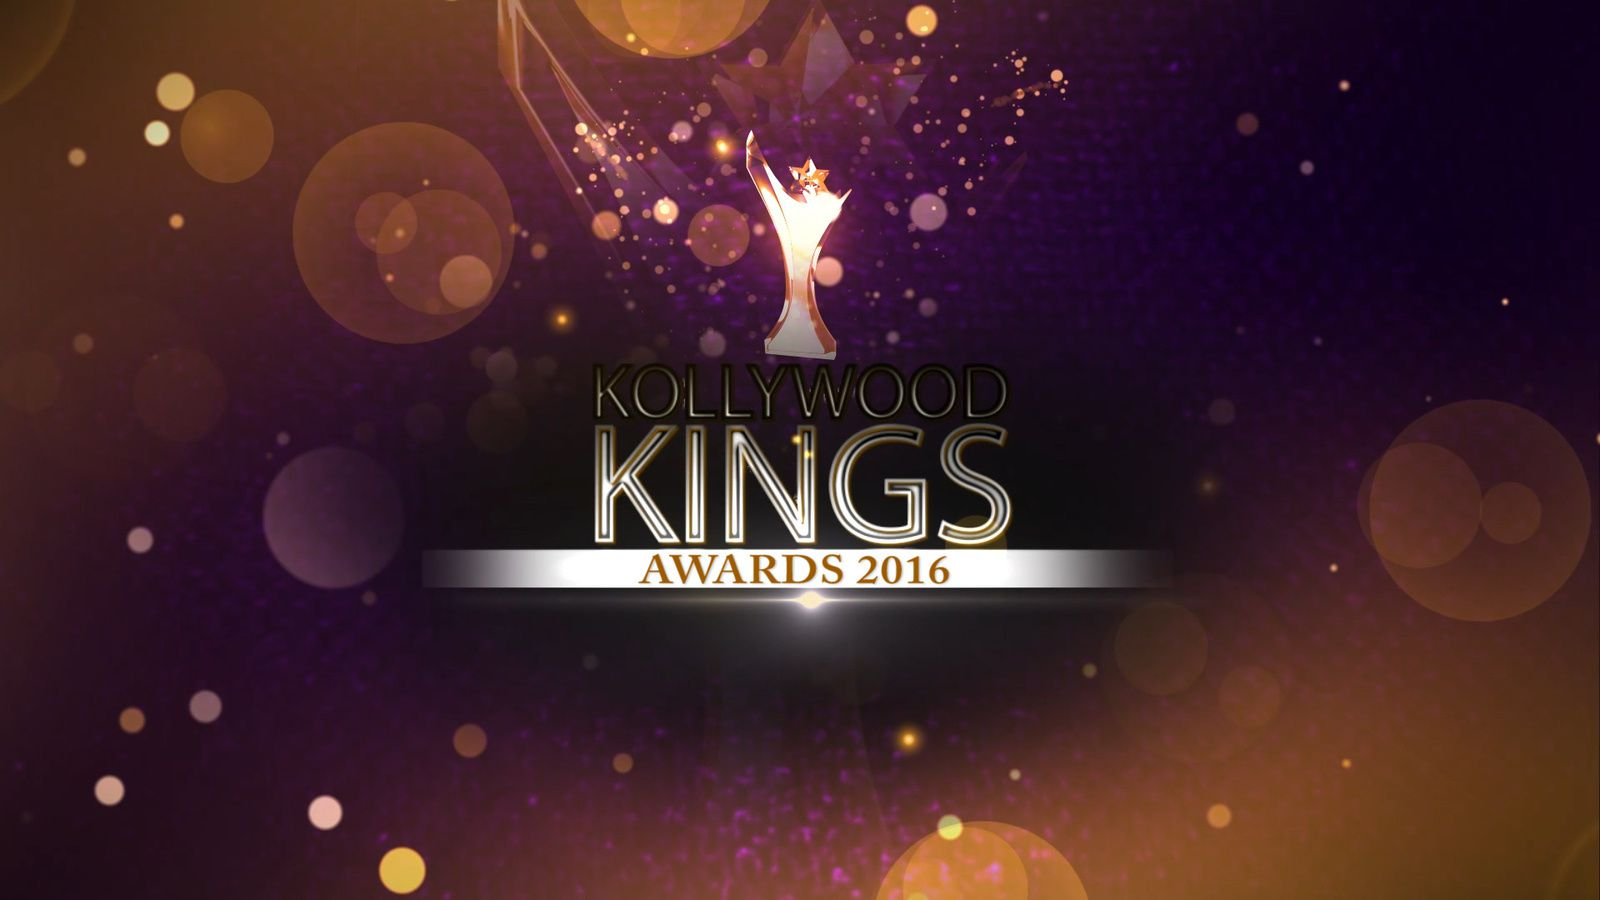 KOLLYWOOD KINGS AWARDS